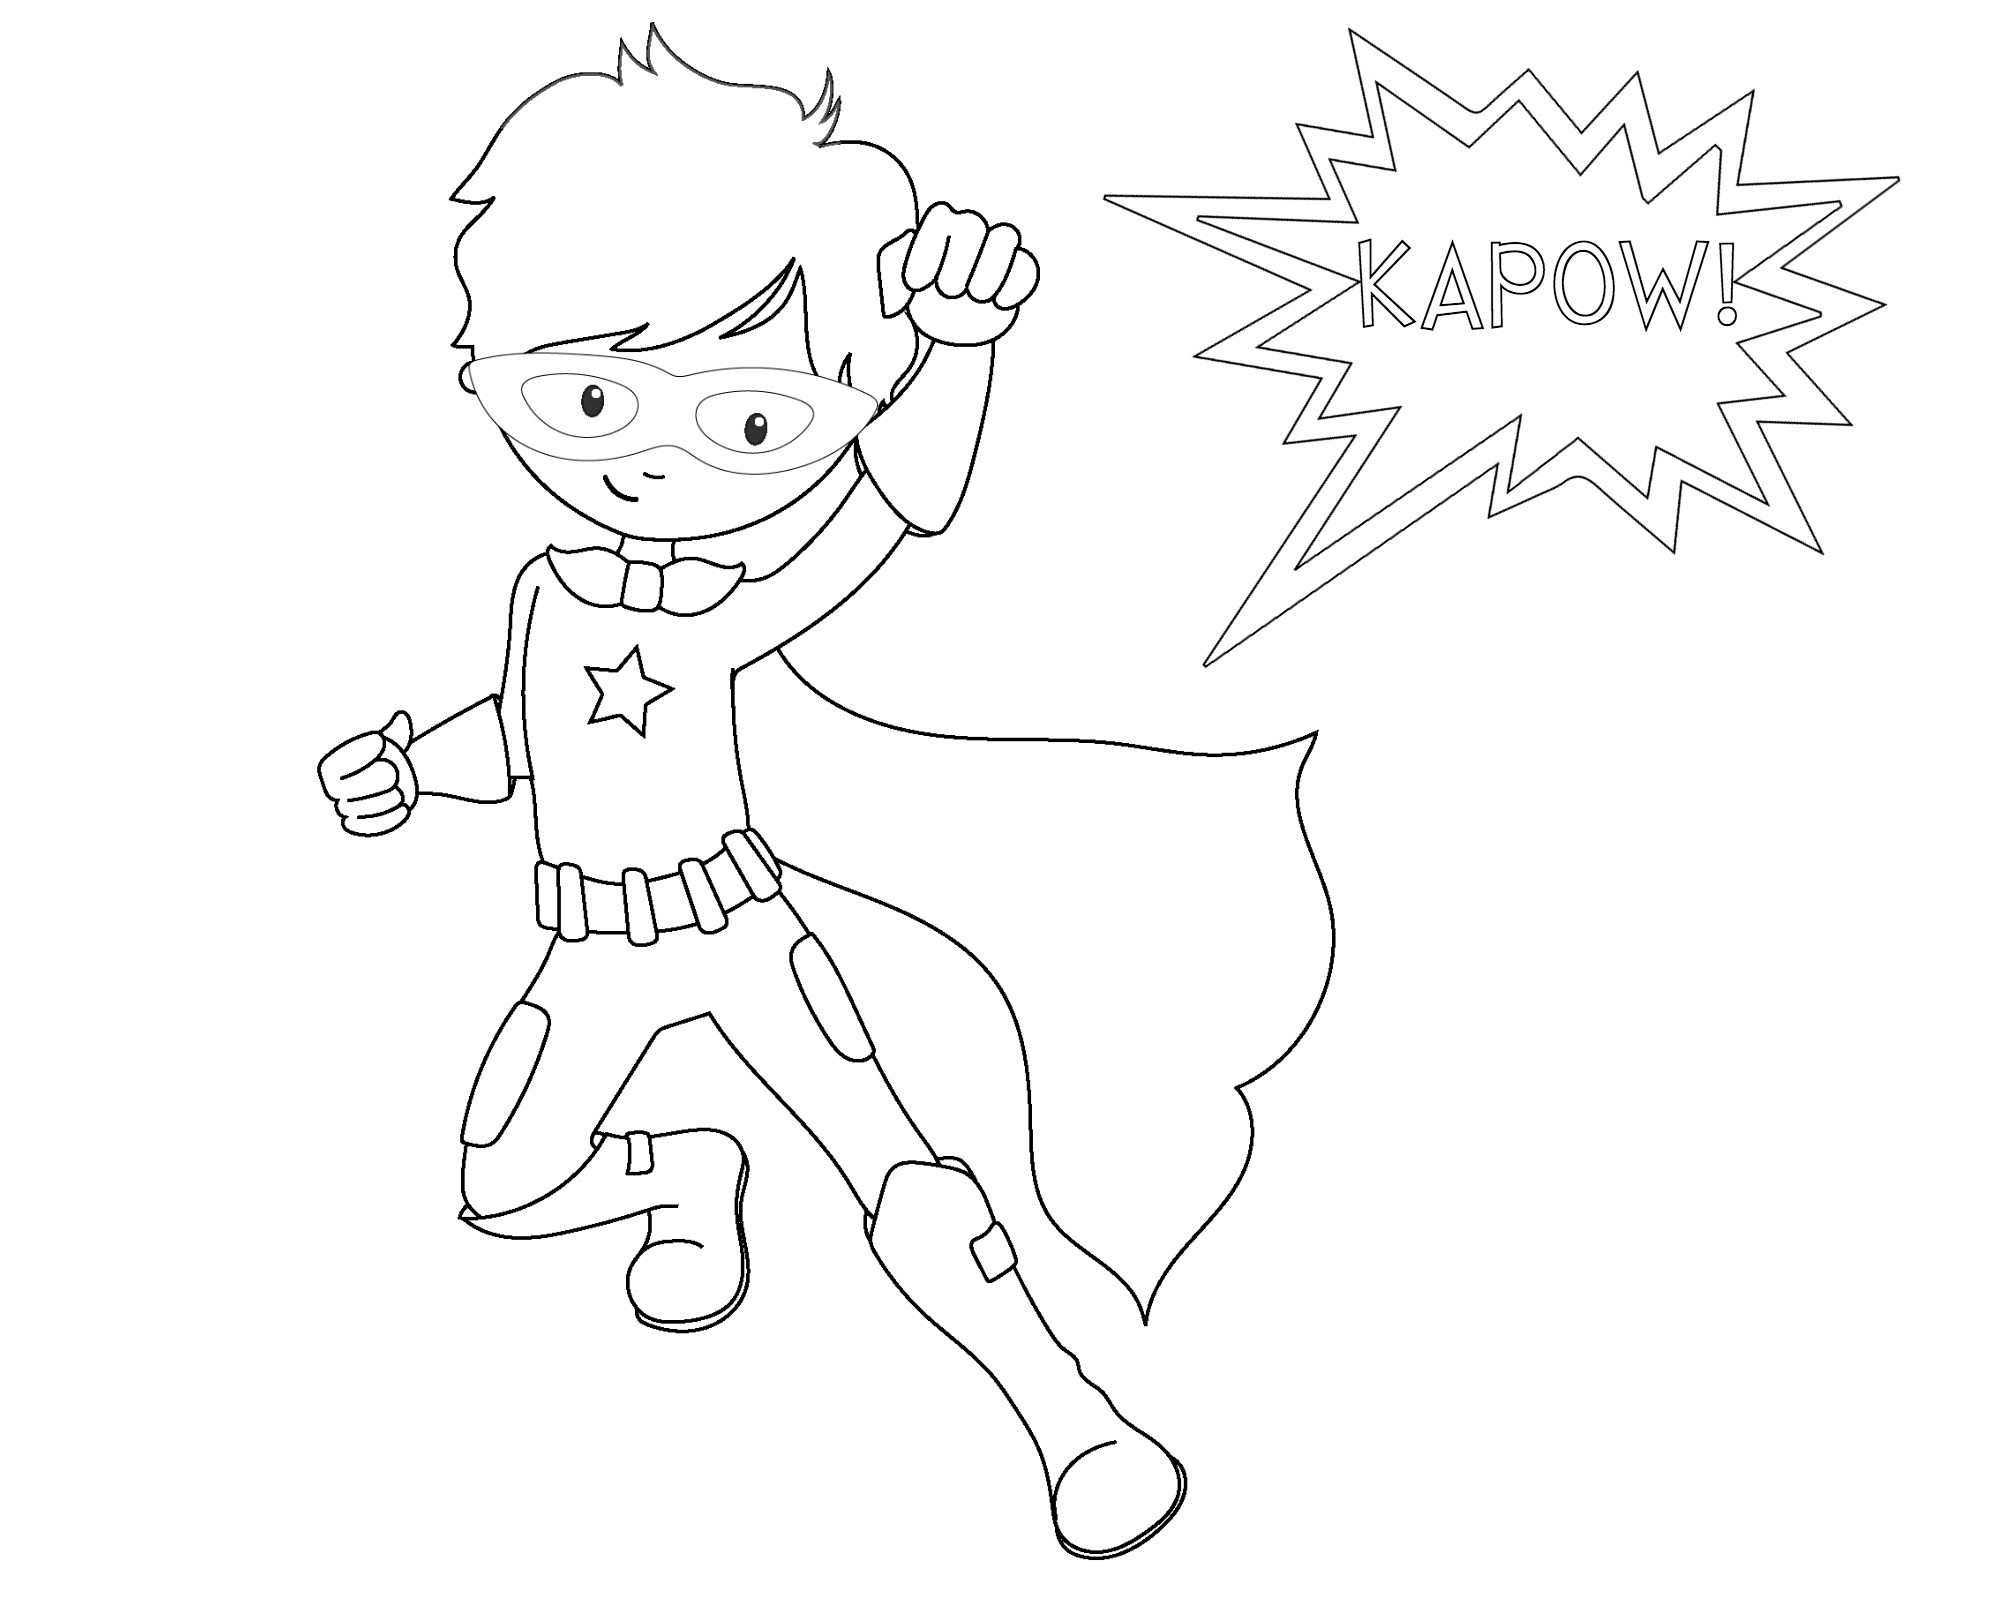 Fresh Music Coloring Pages Wallpapers Gallery Of Superheroes Printable Coloring Pages Gidiyedformapolitica Download